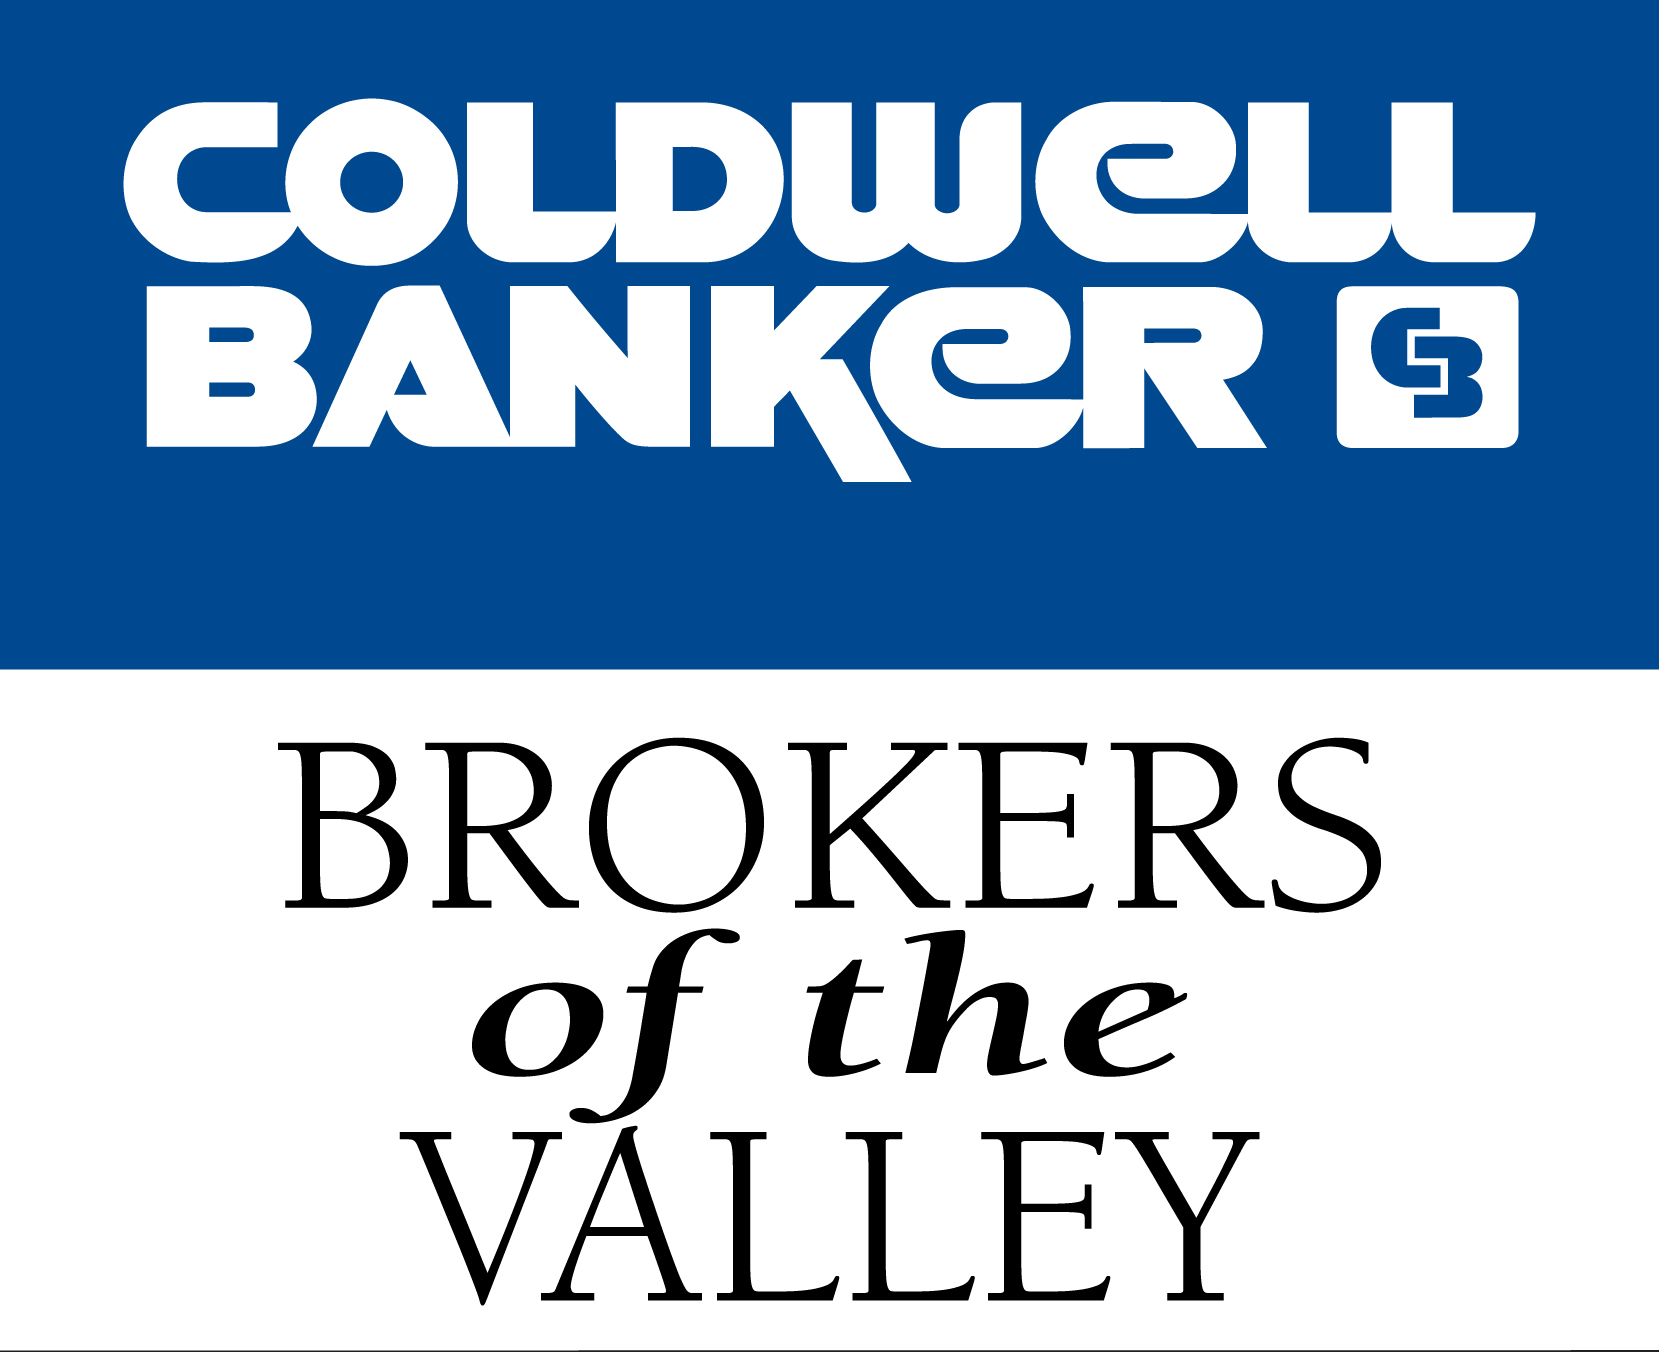 Coldwell Banker Brokers of the Valley